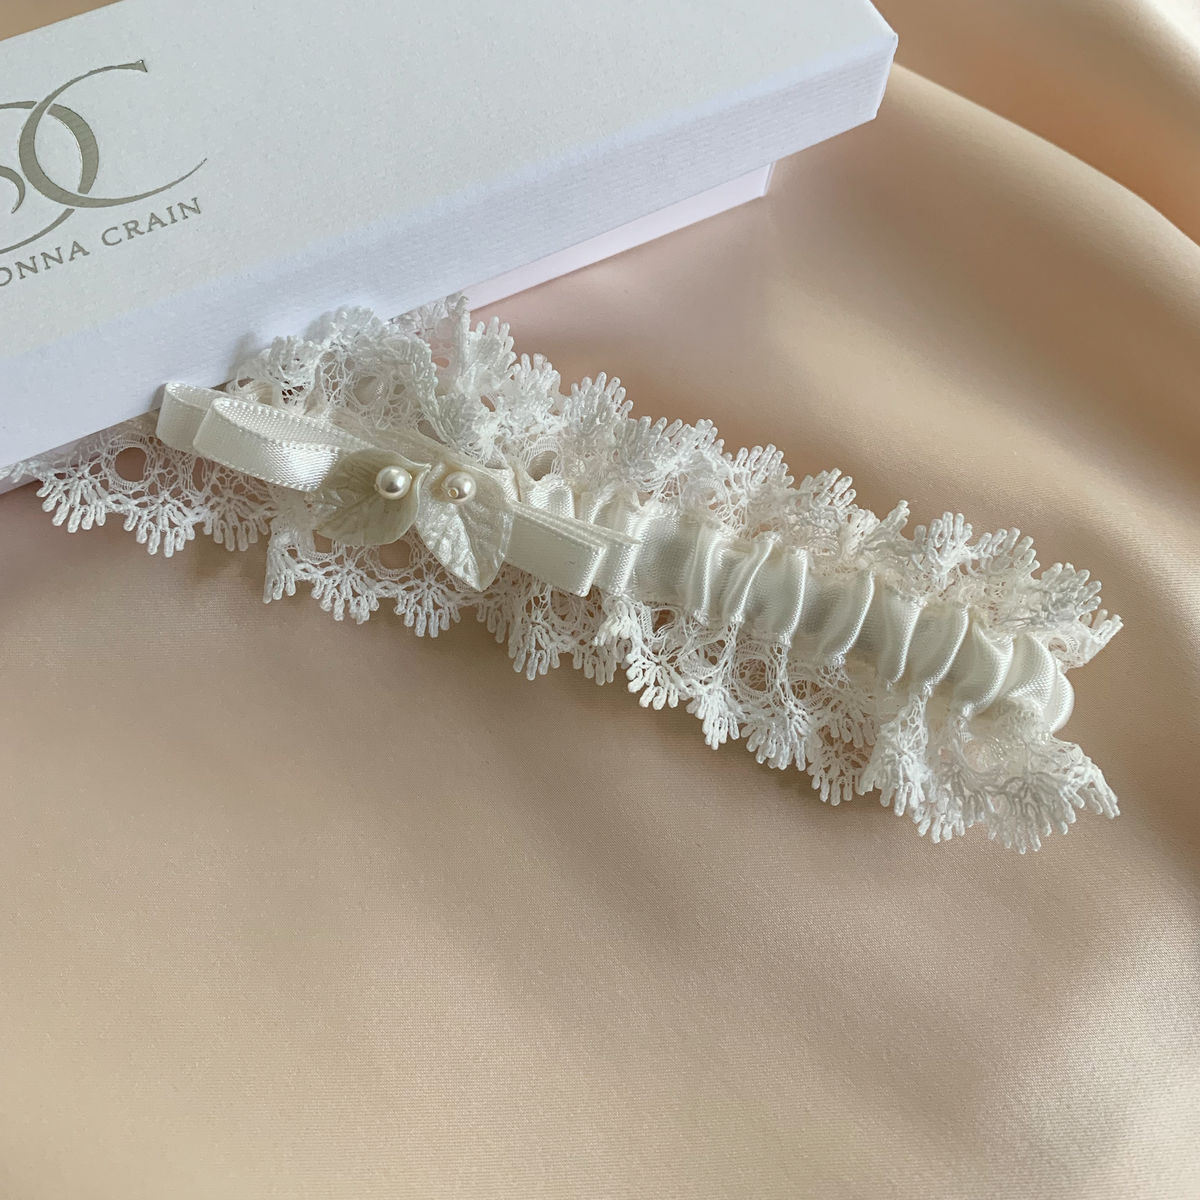 Lace and satin wedding garter - product images  of